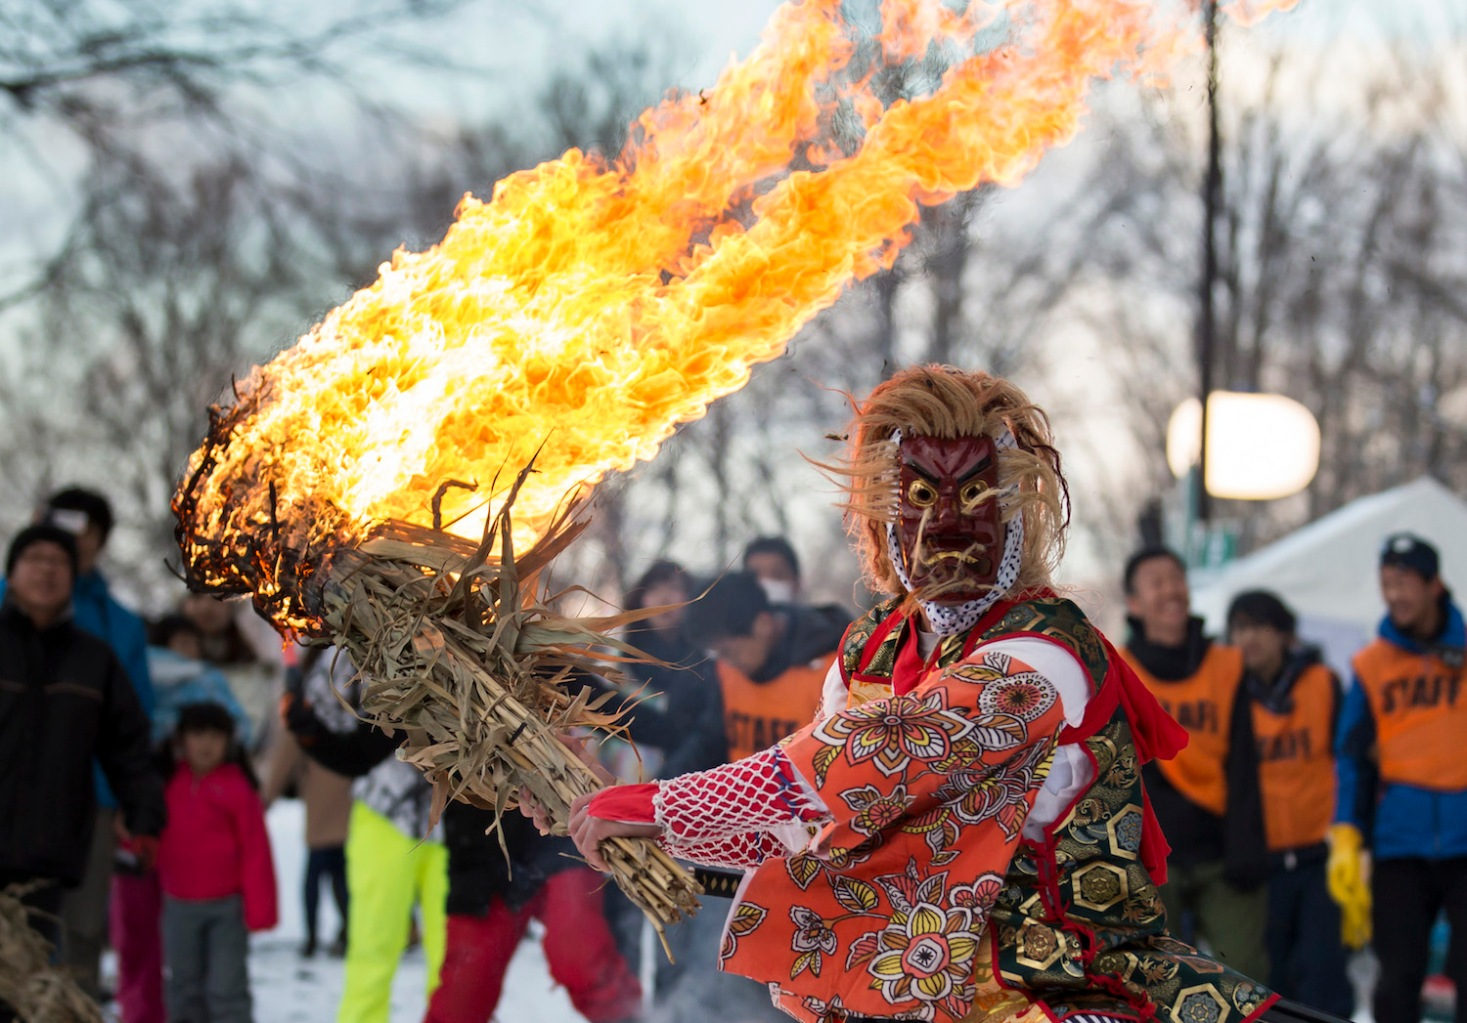 A man wearing a mask of Tengu, a legendary creature in Japanese folklore, holds a flaming torch during a ceremony held ahead of the Tsunan Sky Lantern event on March 10, in Tsunan, Japan. About 2,000 lanterns were released at the event which began in commemoration of victims of the earthquake that hit the region March 12, 2011 and has grown to attract tourists marking the end of the town's snow season, known as one of the heaviest snowfall areas in Japan. (Photo by Tomohiro Ohsumi/Getty Images)